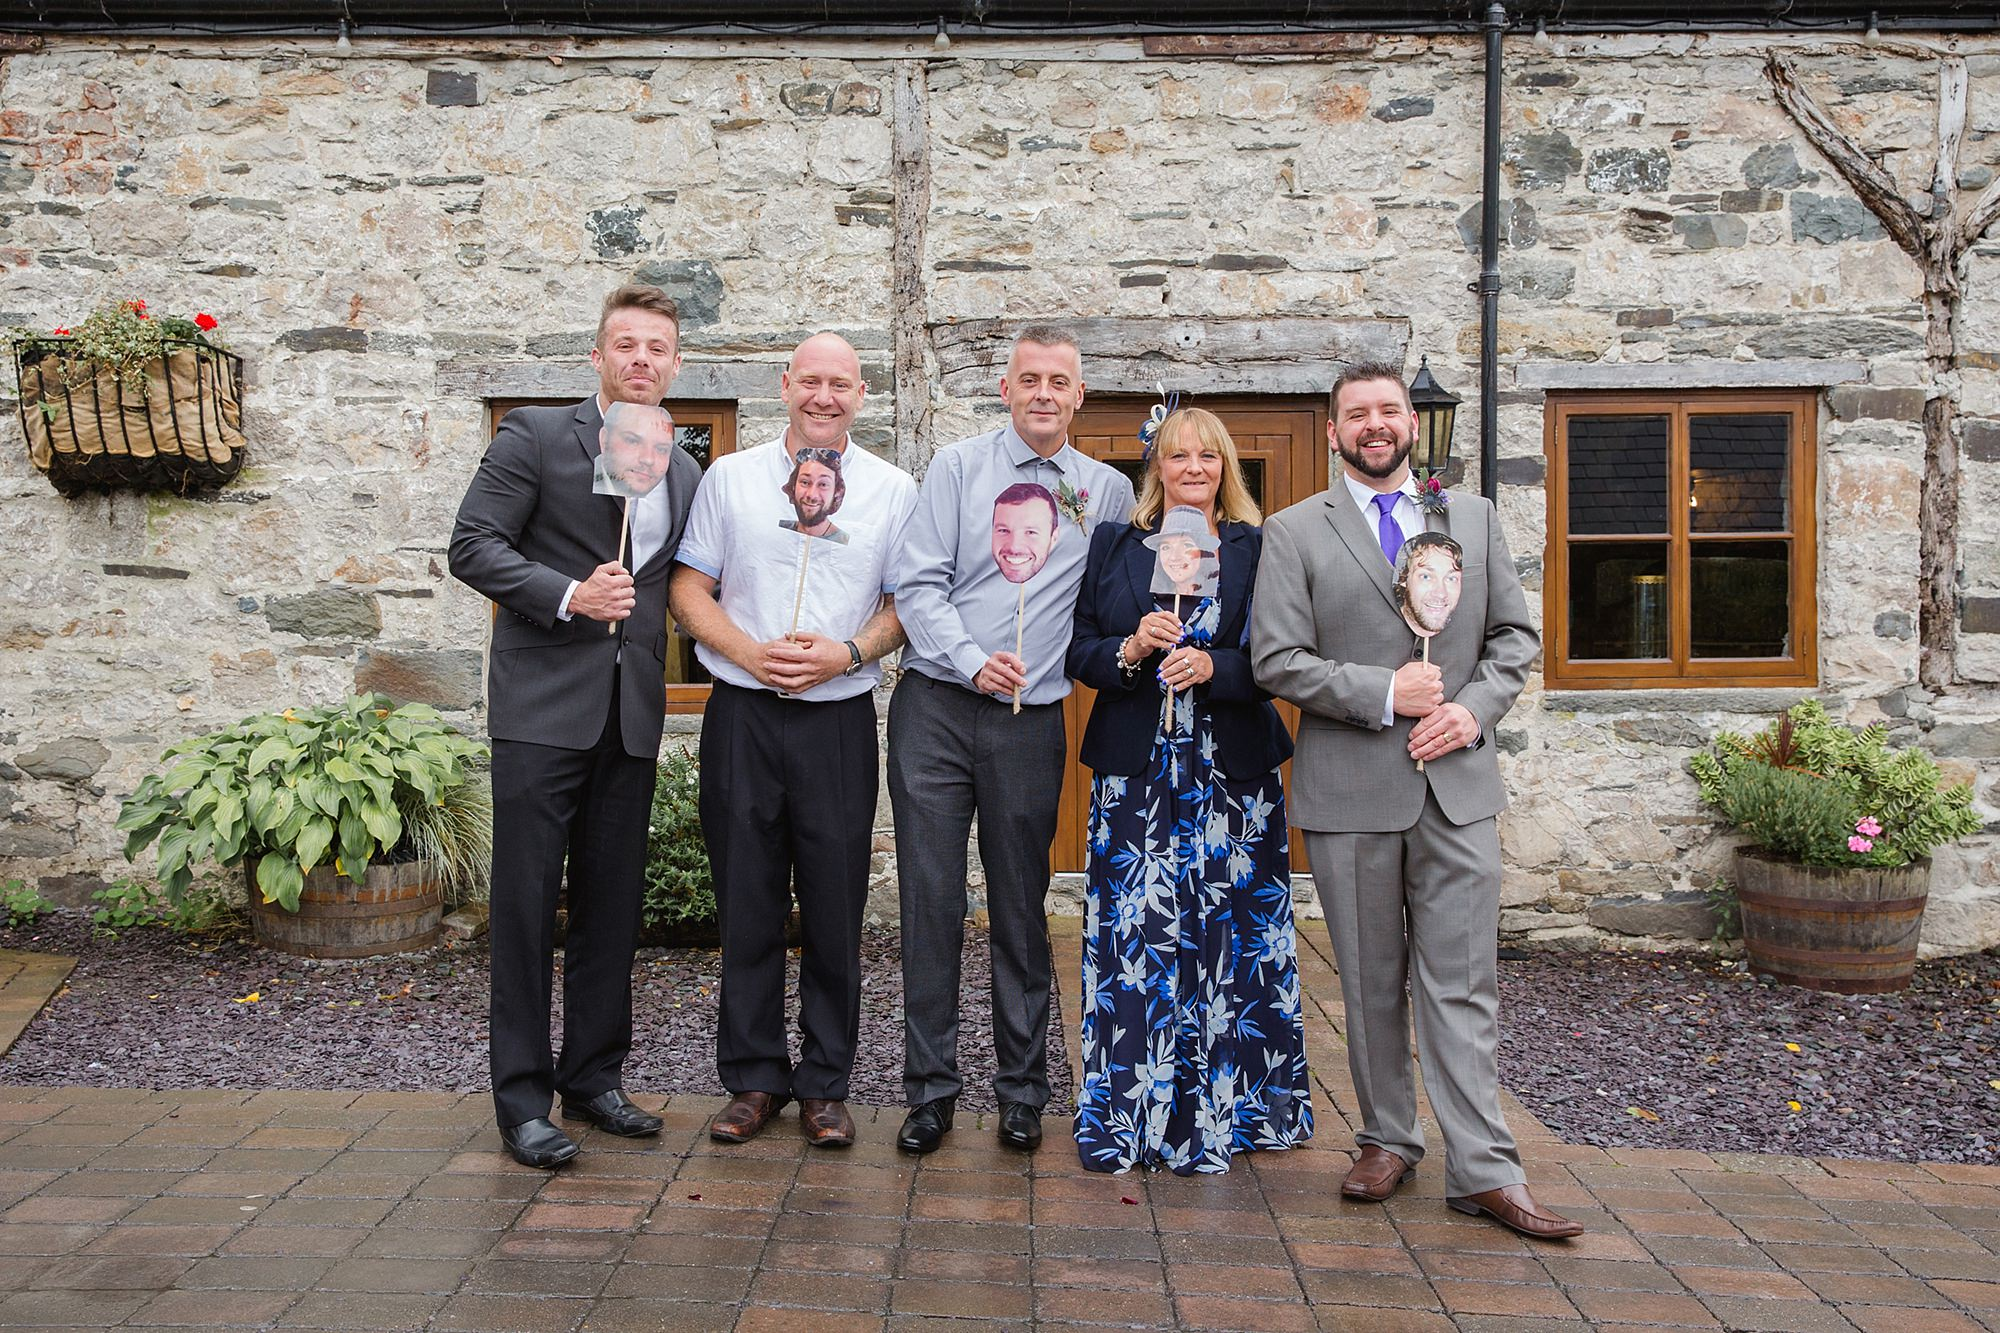 A fun wedding group photo with cutout heads